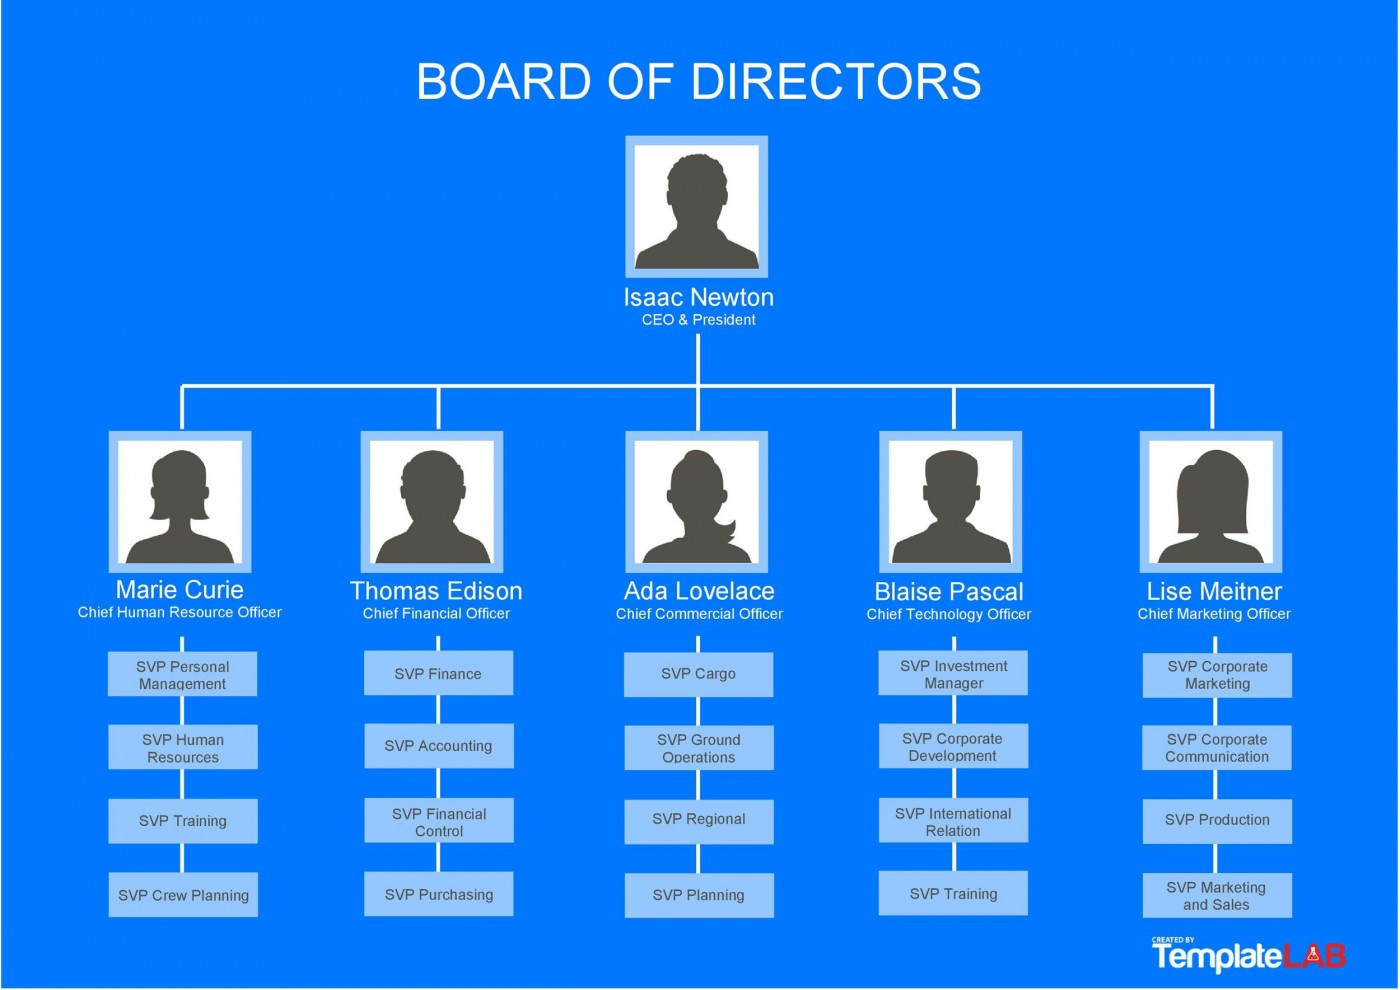 001 Stirring Organizational Chart Template Word Image  2010 2007 Free Download1400